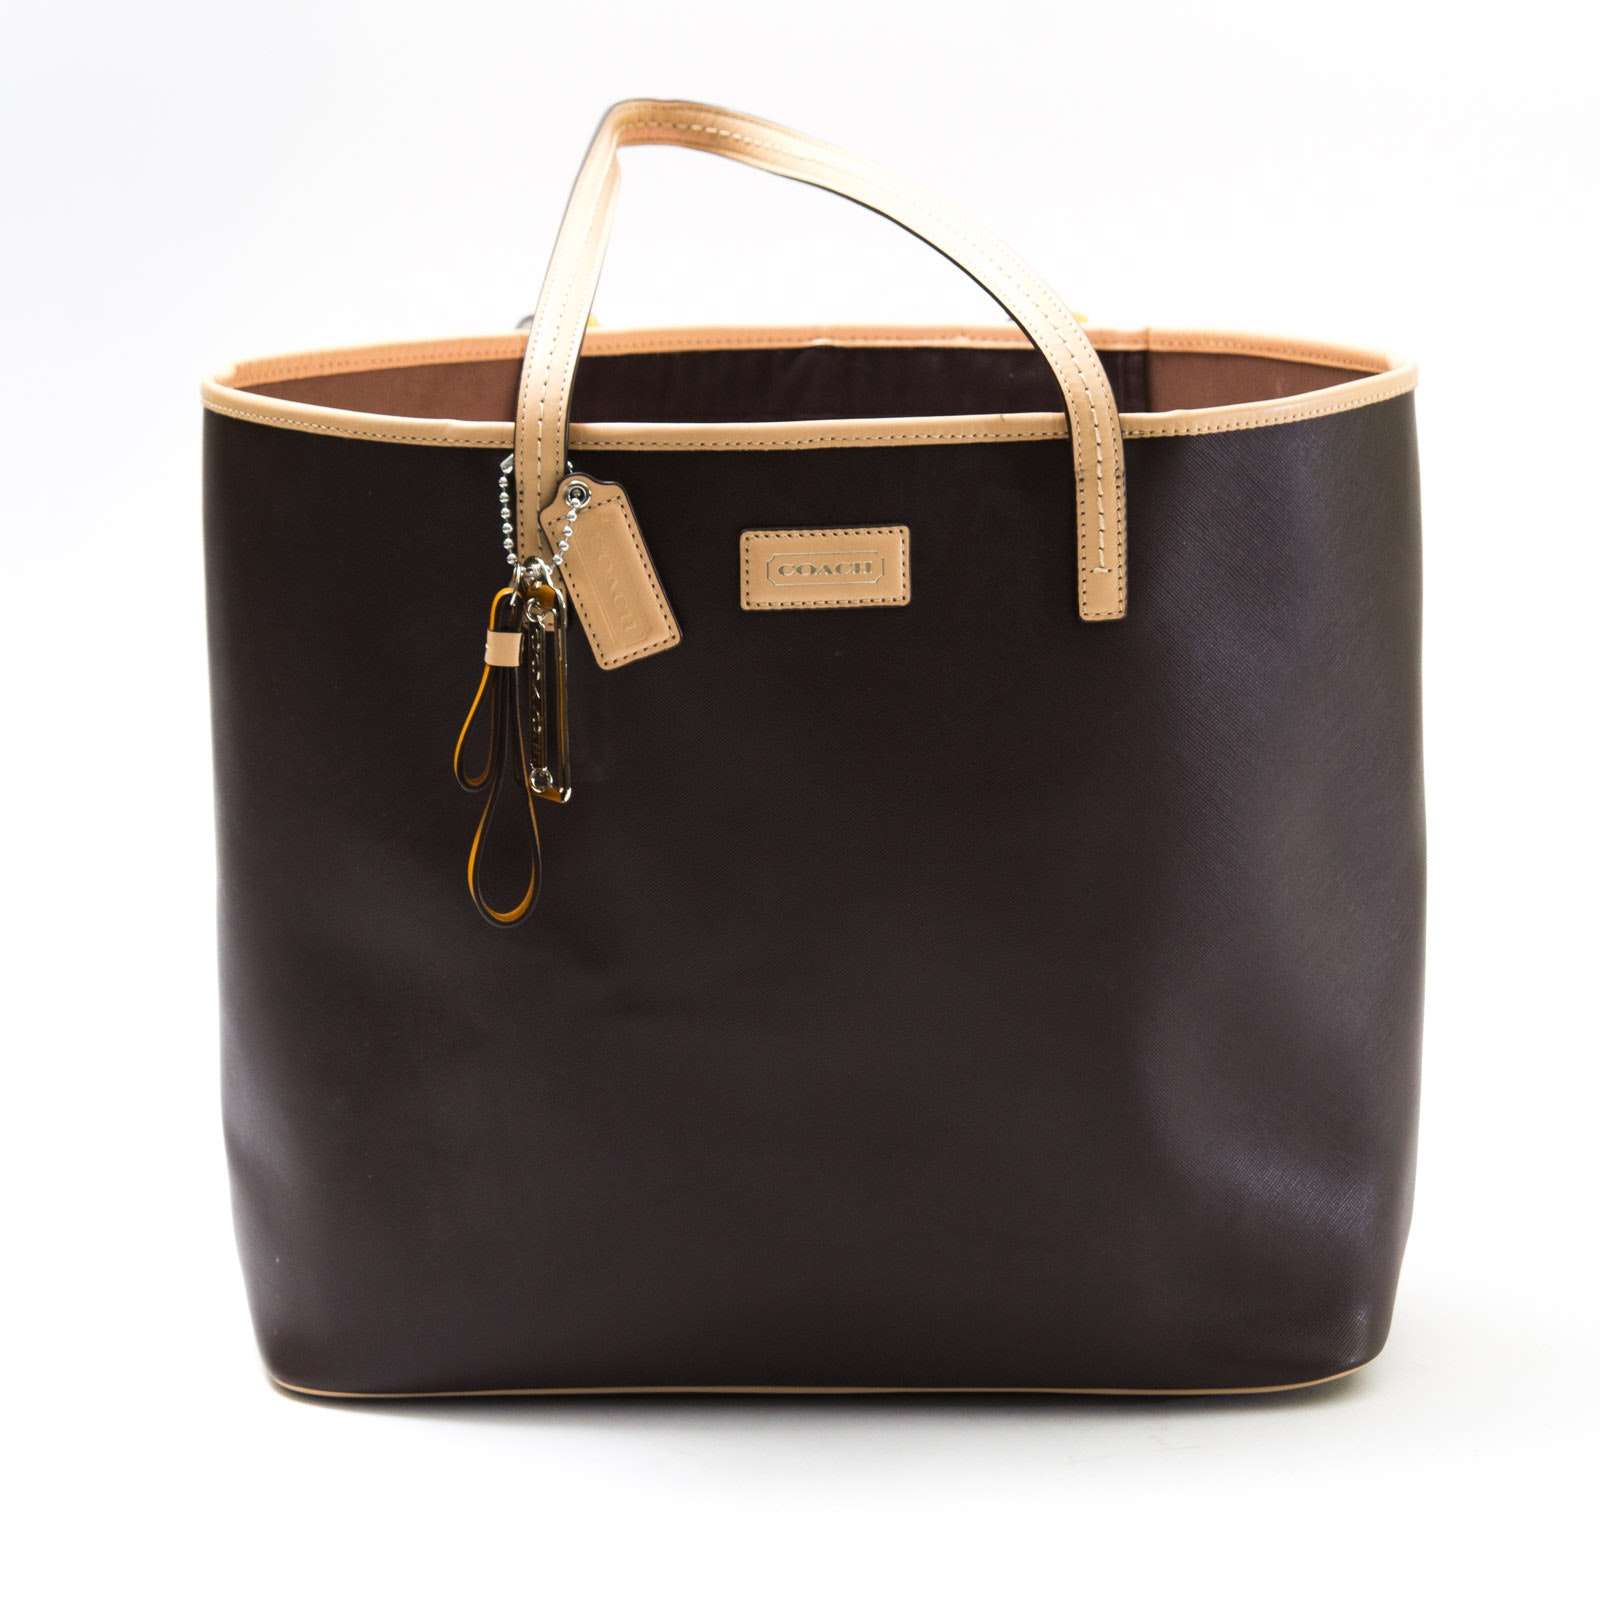 Brown Leather COACH Purse